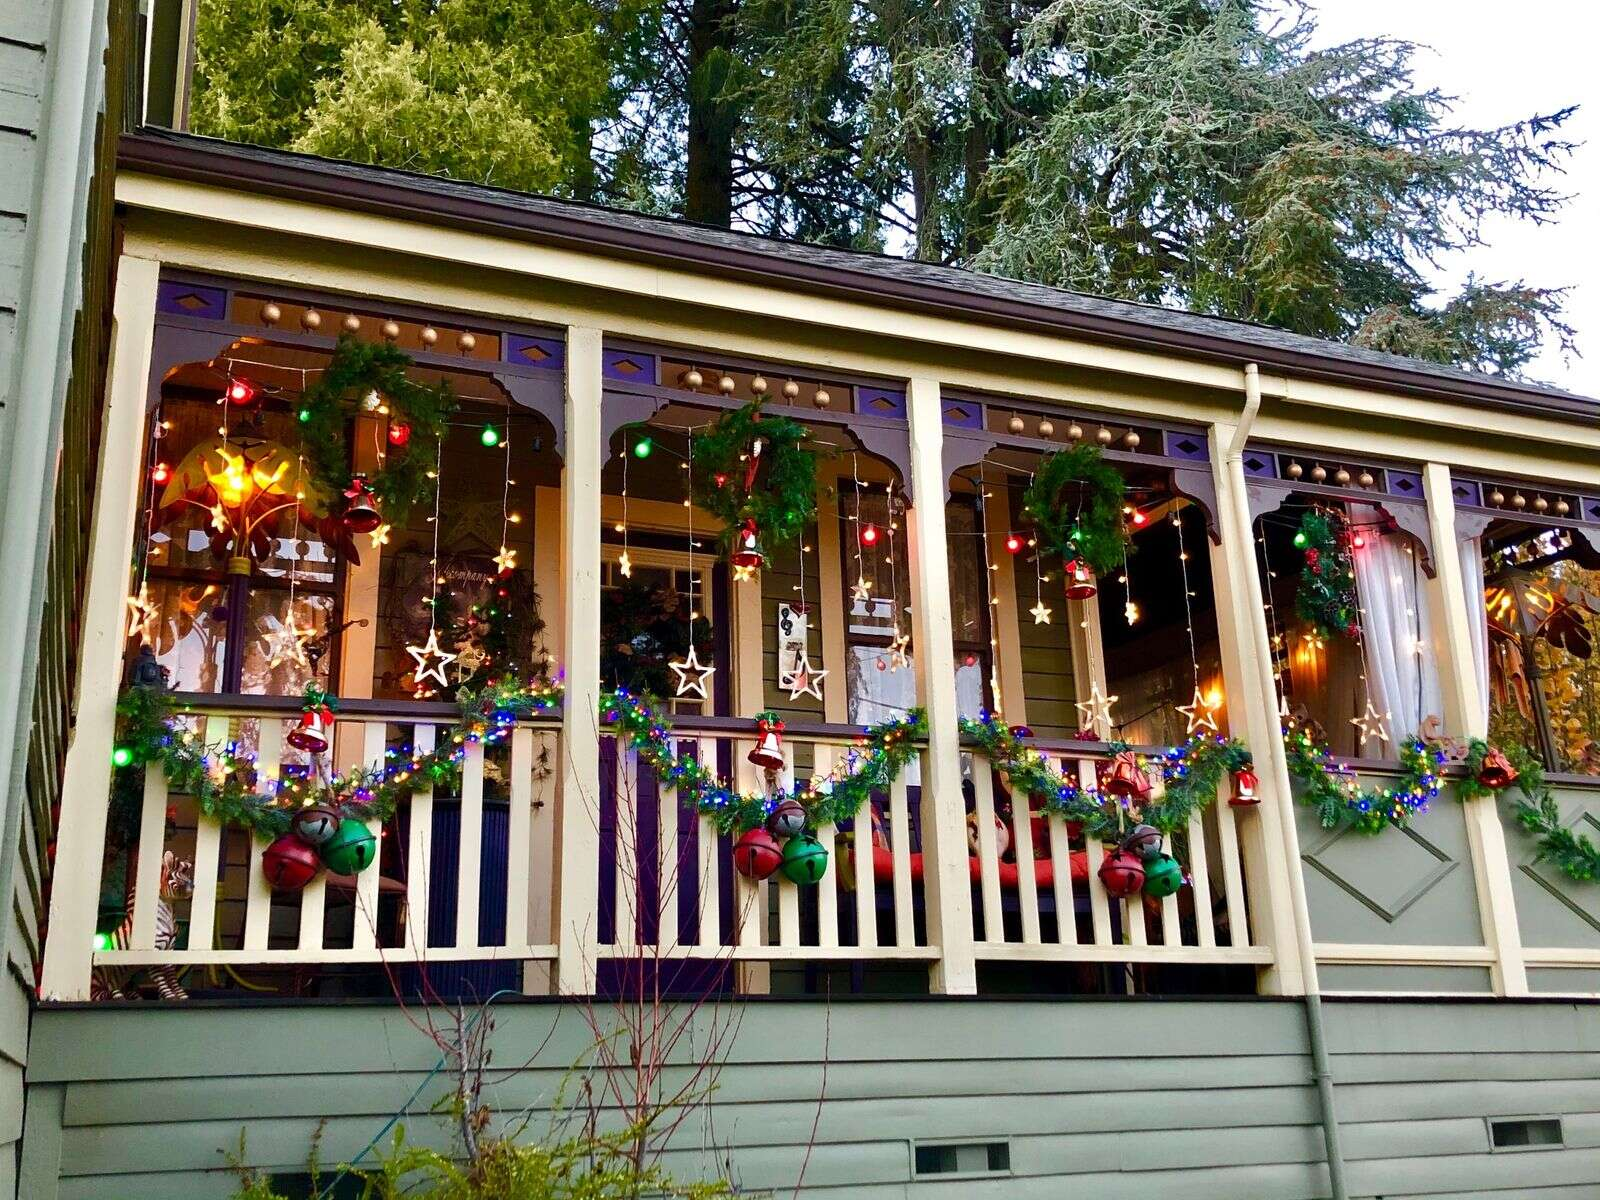 My wonderful porch with festive lighting! Ready for Christmas!   Submitted by Helen Boss